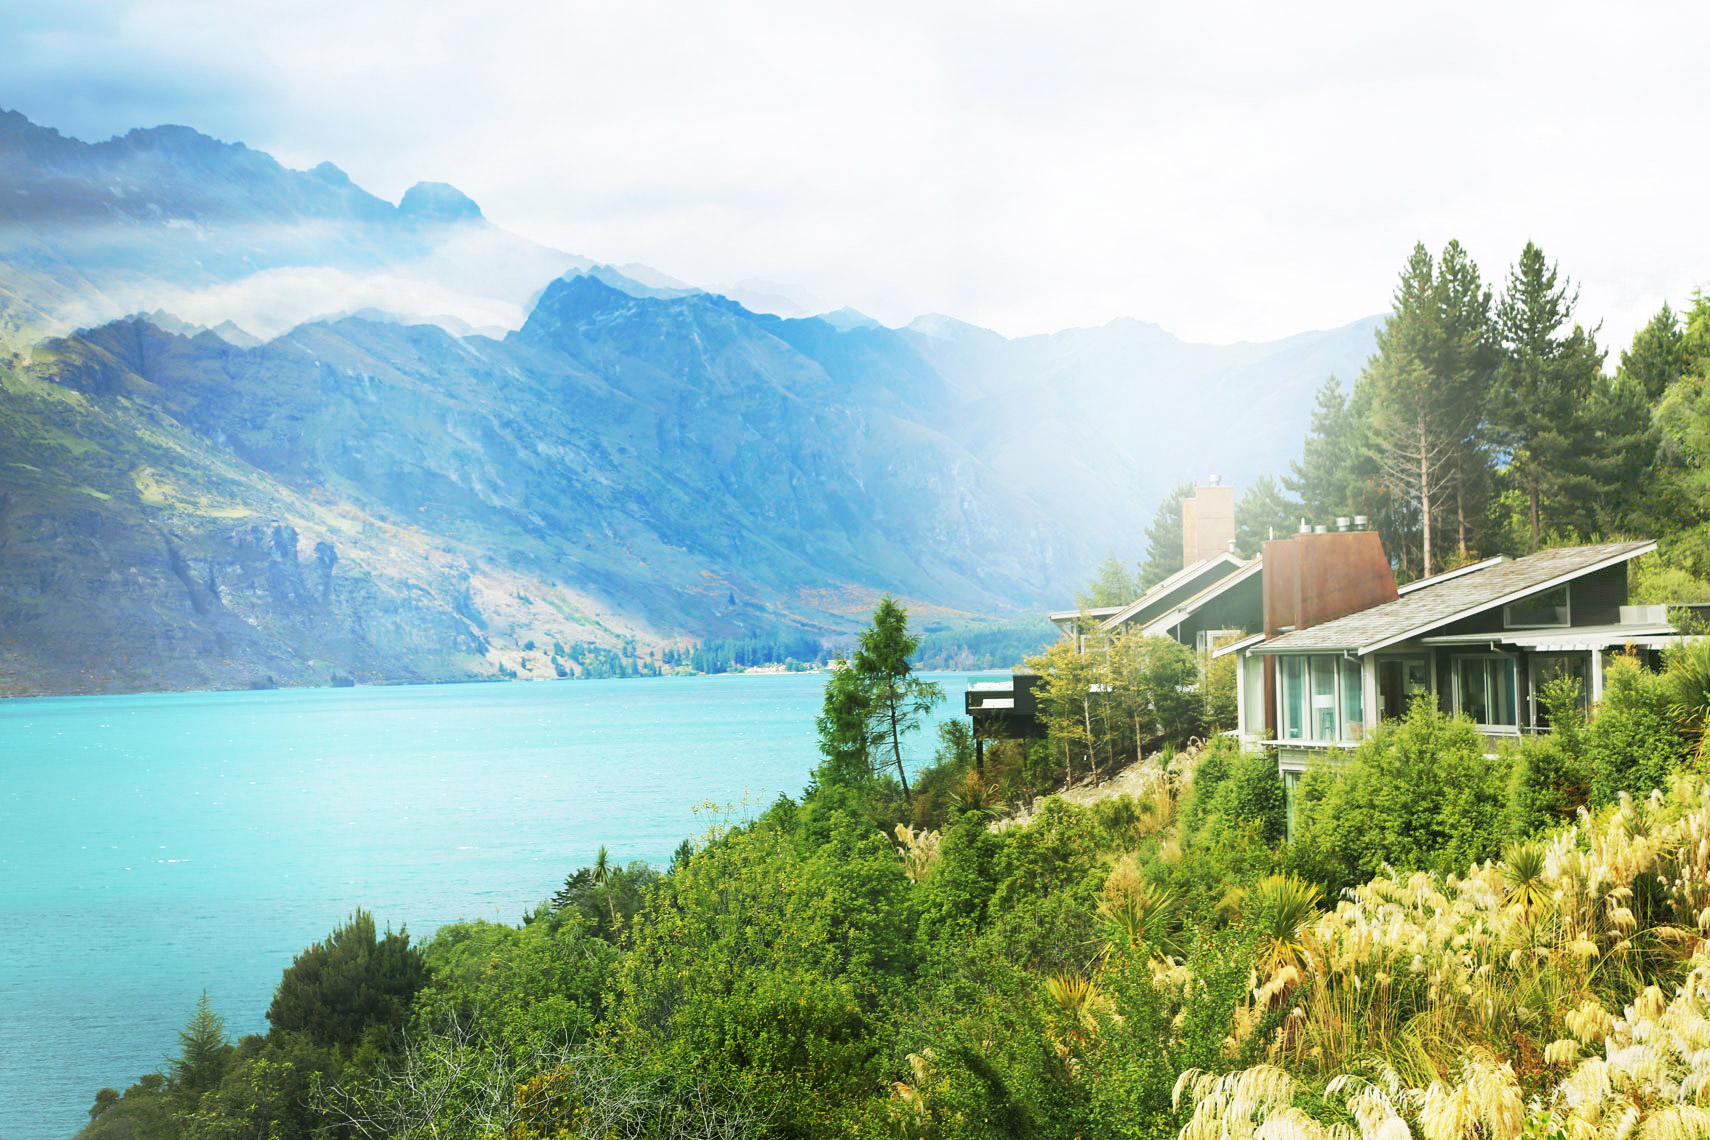 Kelly-Stuart-Veranda-travel-New-Zealand-6-b